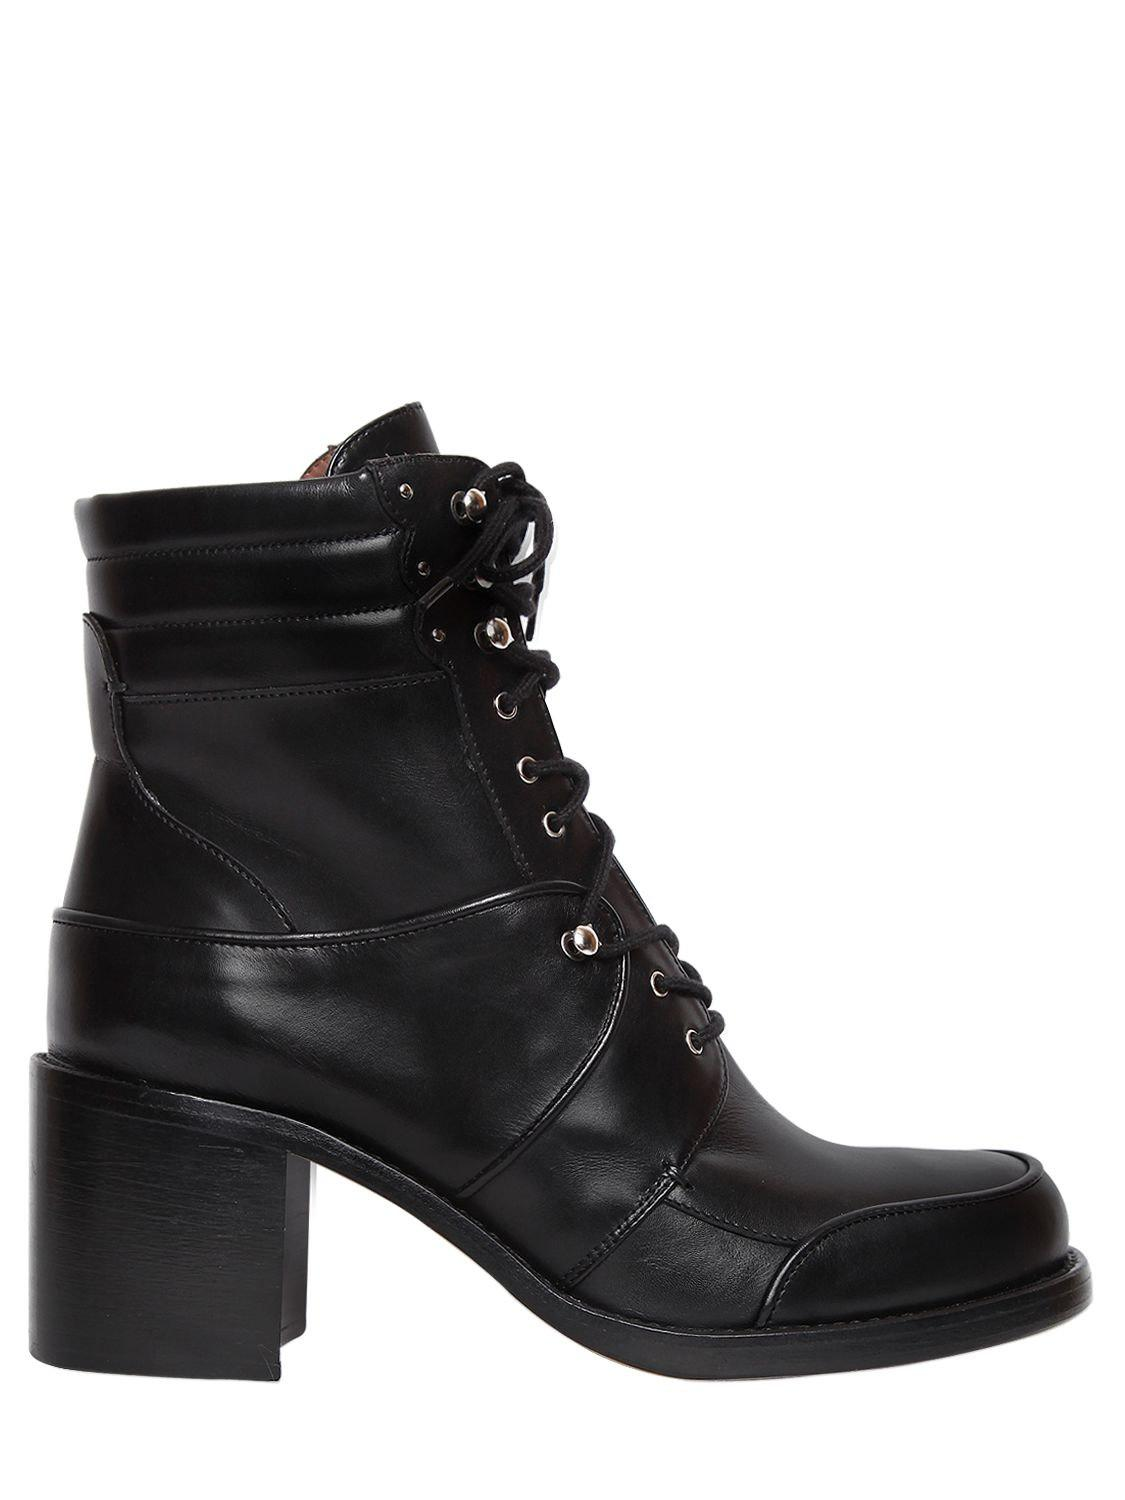 Max Leather Combat Boots Tabitha Simmons